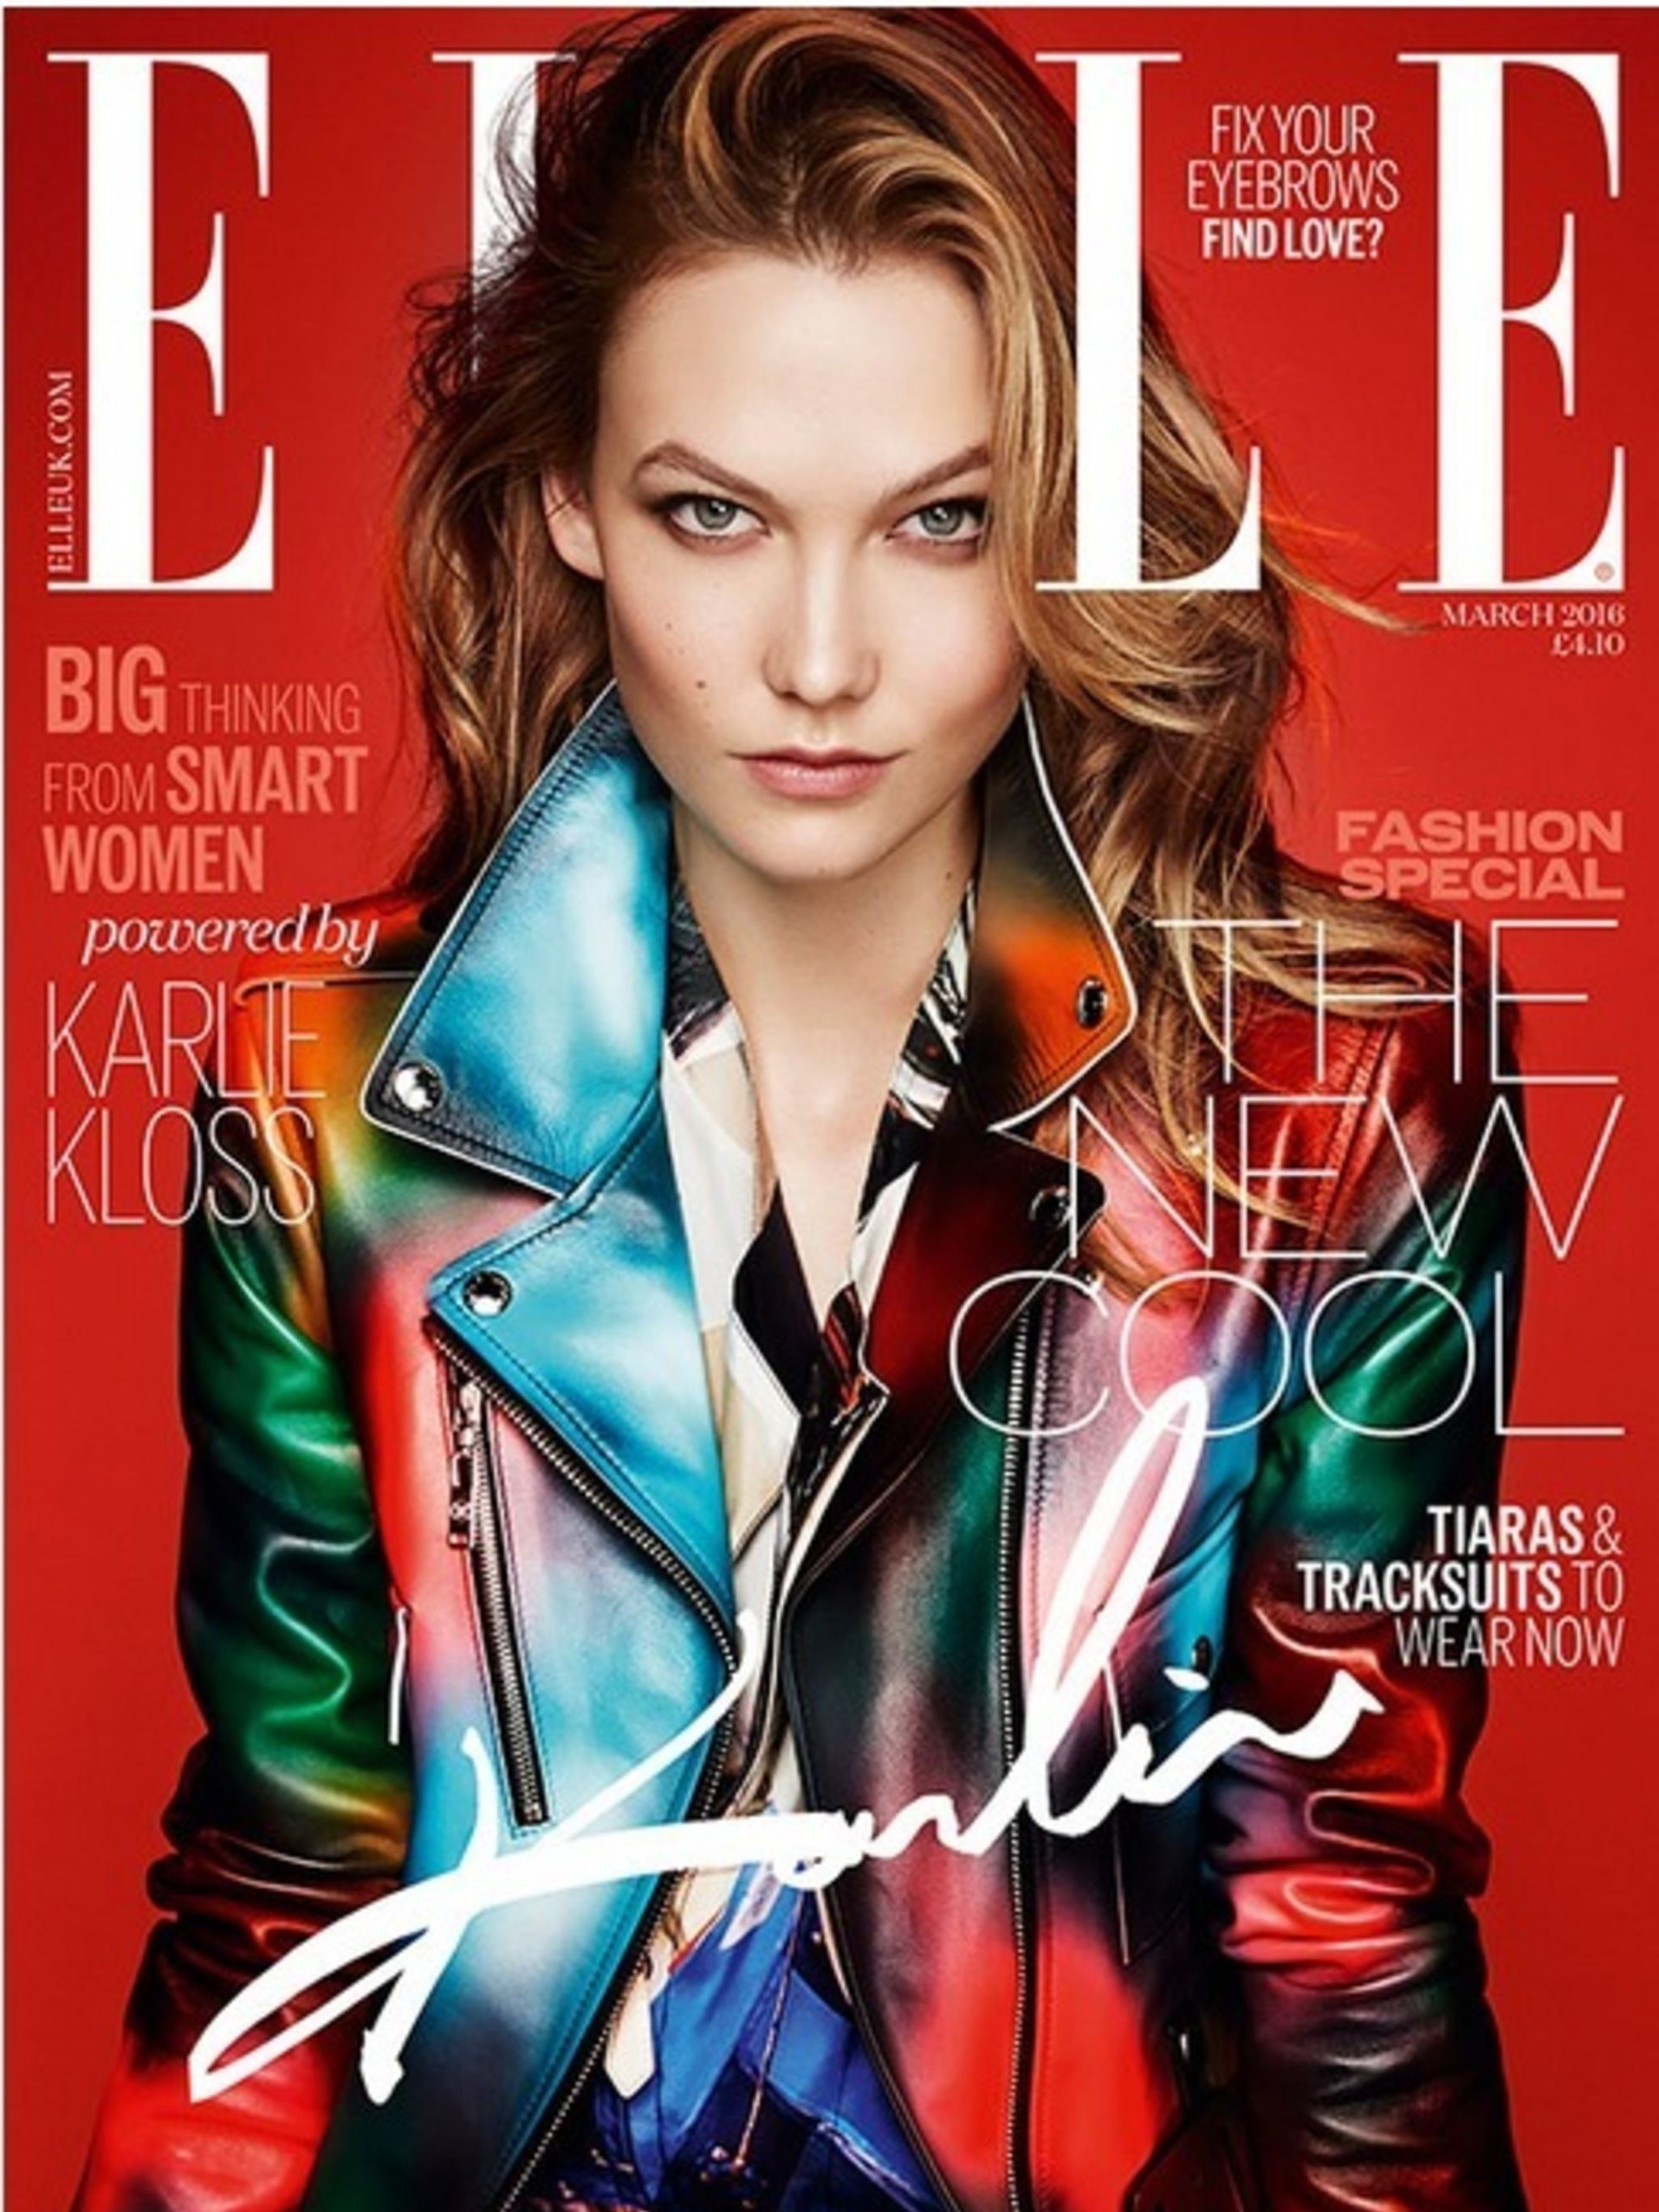 British Elle called the Woman of the Year 02/25/2010 62